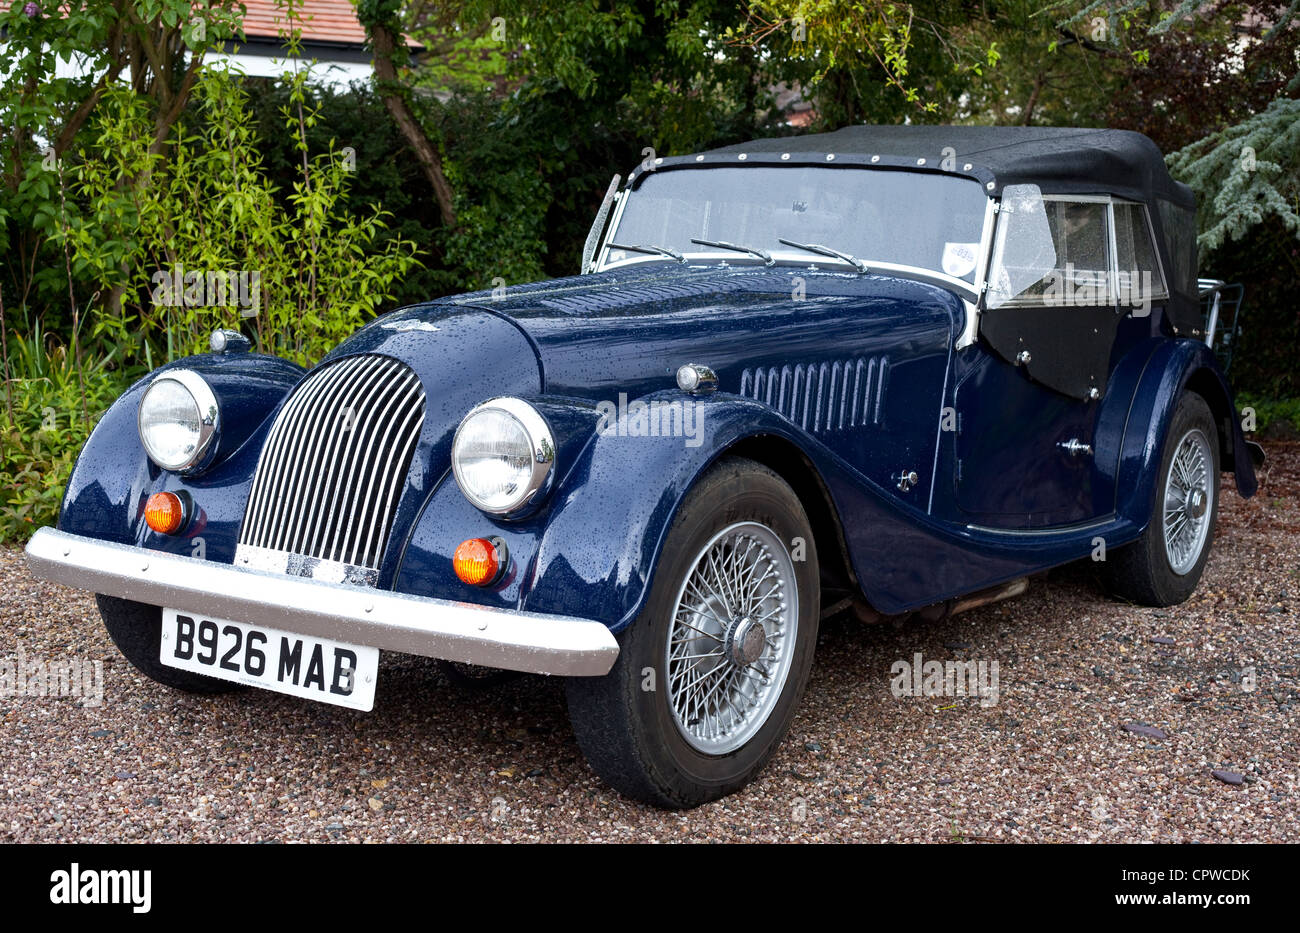 Dunkel blau Morgan Roadster Auto, Worcestershire, England, UK Stockbild